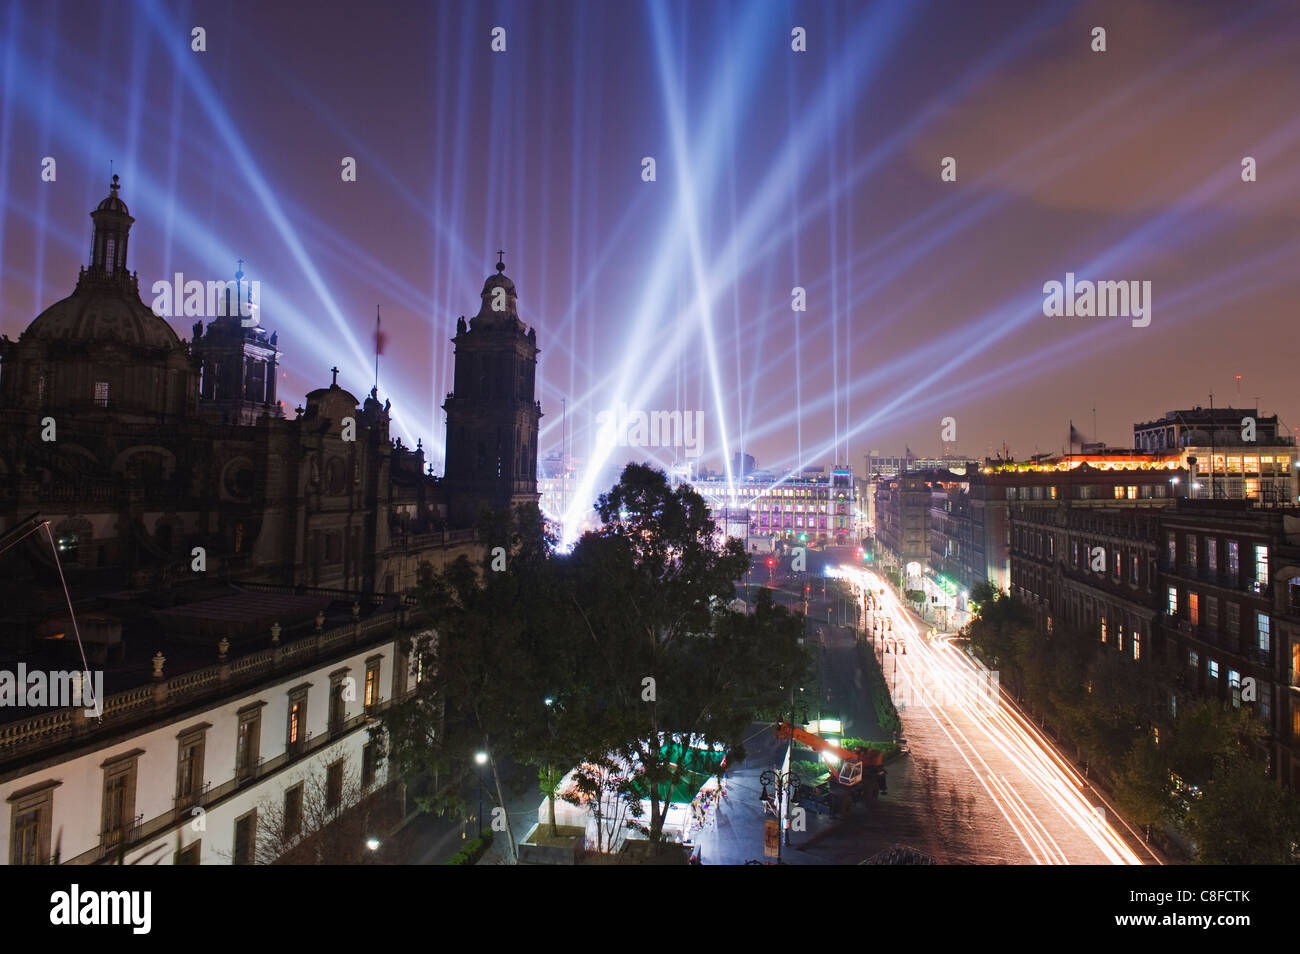 Light show at Cathedral Metropolitana, District Federal, Mexico City, Mexico - Stock Image